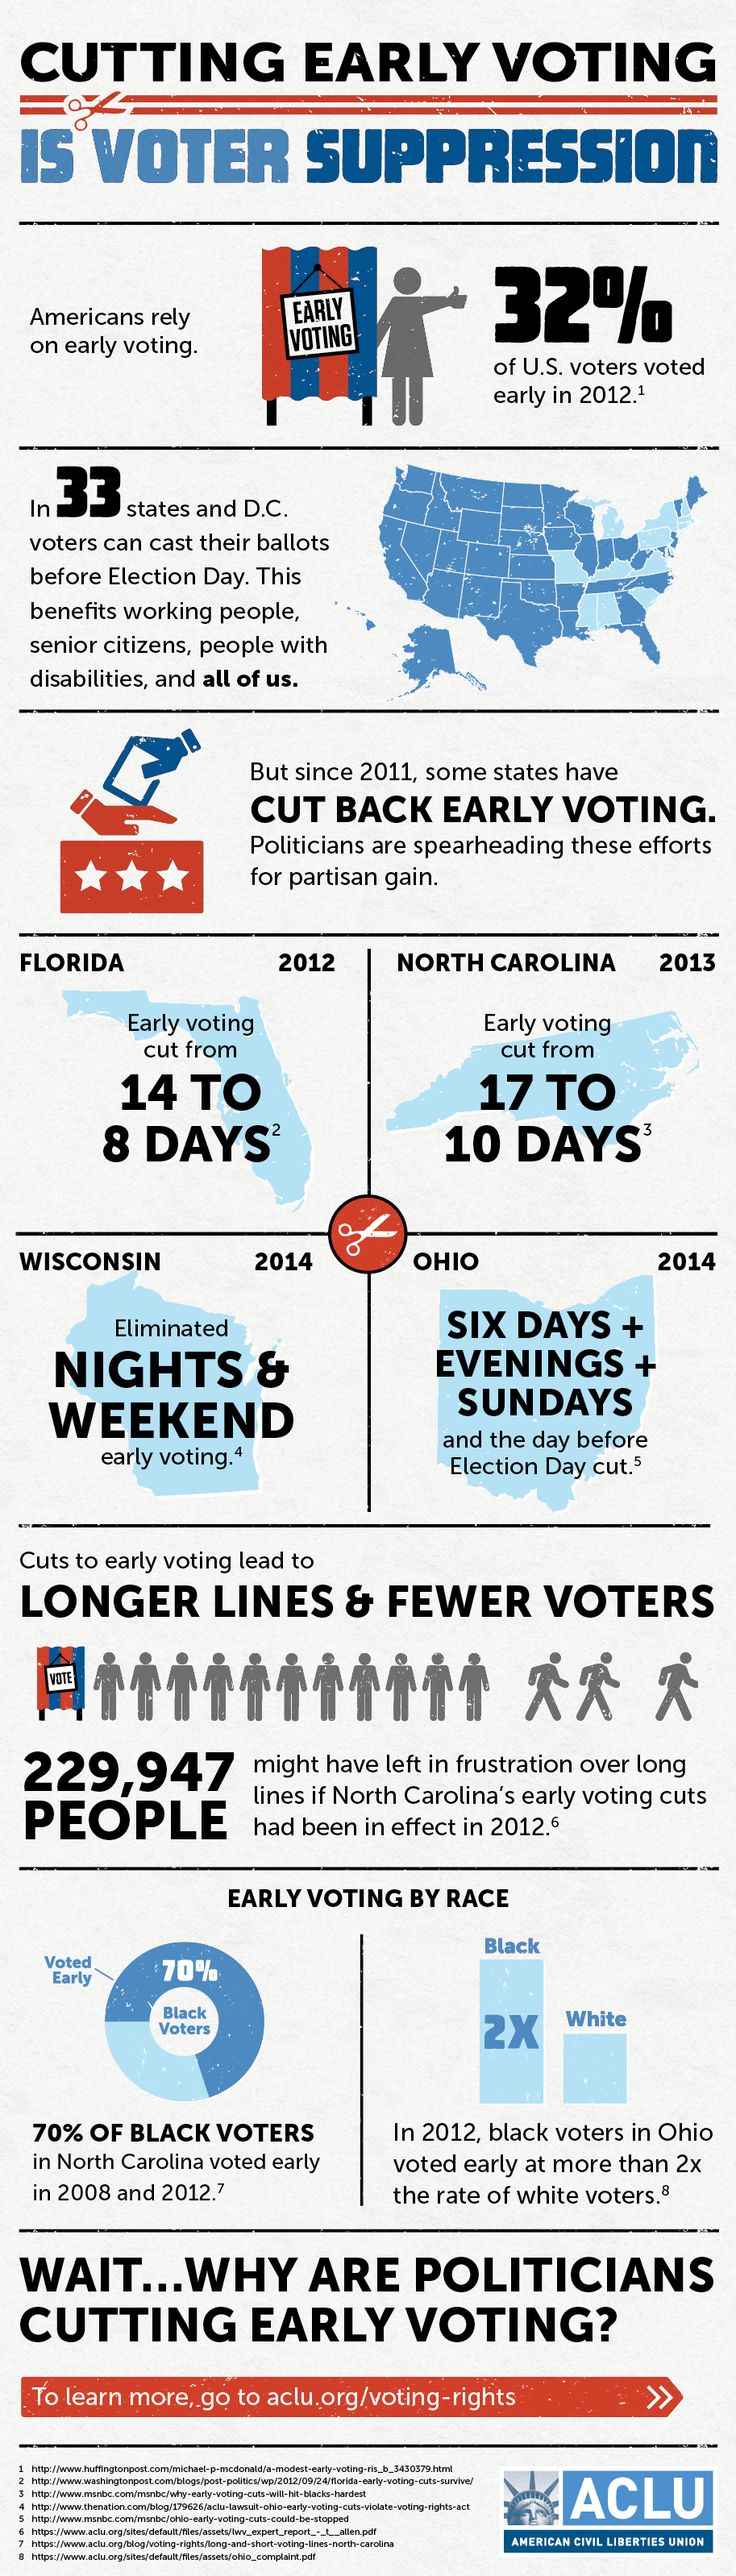 Cutting Early Voting is Voter Suppression.  WE MUST VOTE THESE NUTS OUT AT ANY COST. STAND IN LINE AS LONG AS IT TAKES.  YOUR FUTURE LITERALLY DEPENDS ON IT.